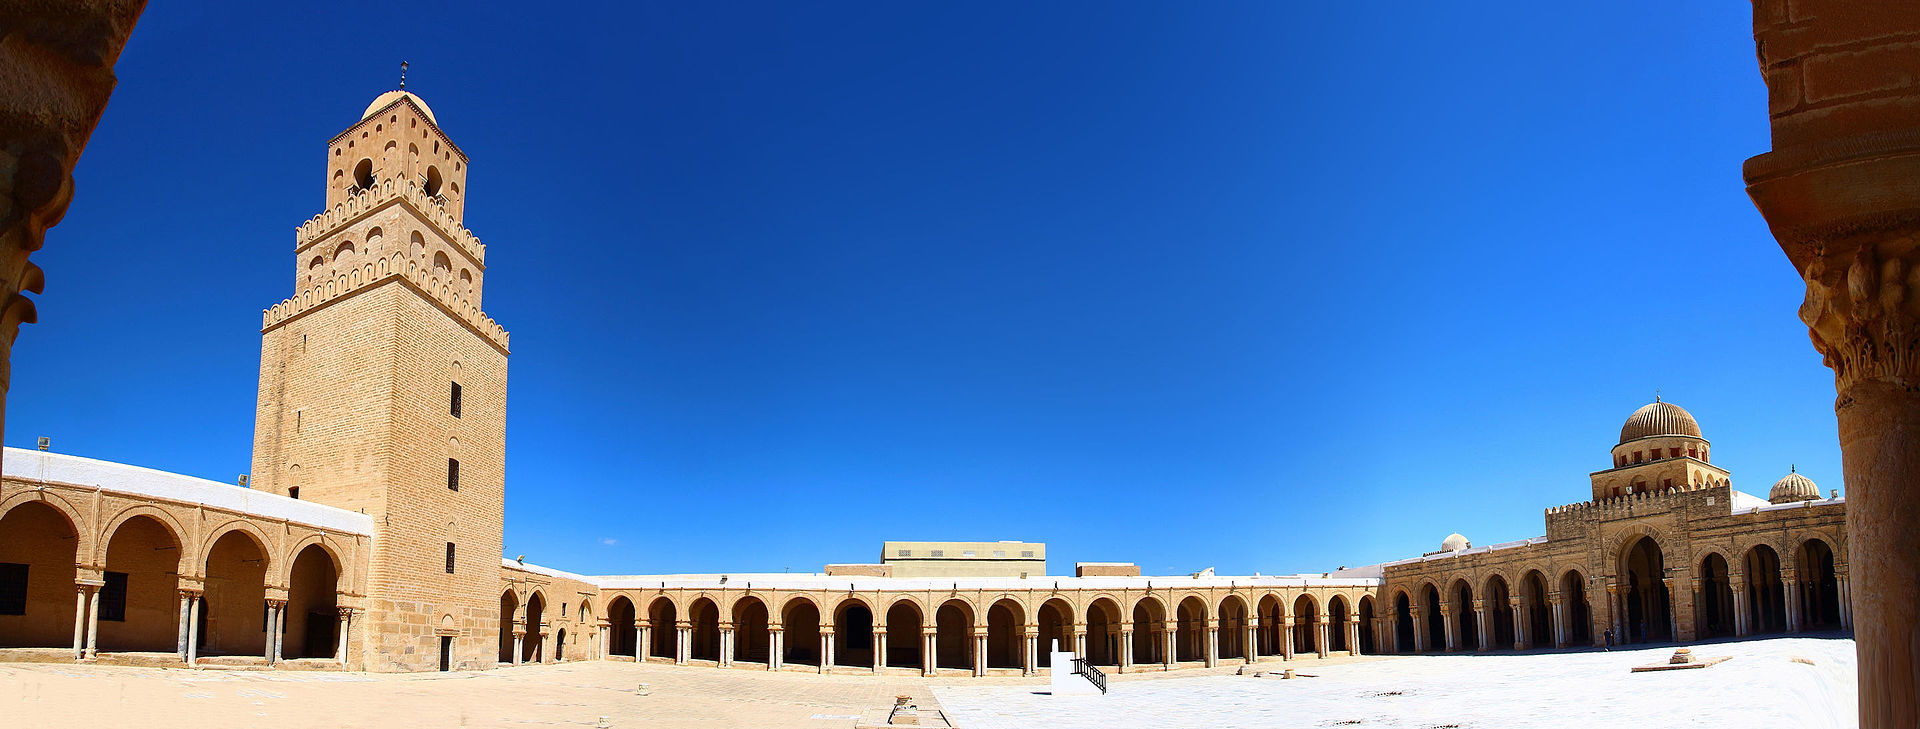 _1920px-Panorama_of_the_courtyard_of_the_Great_Mosque_of_Kairouan_4207526141183035772.jpg